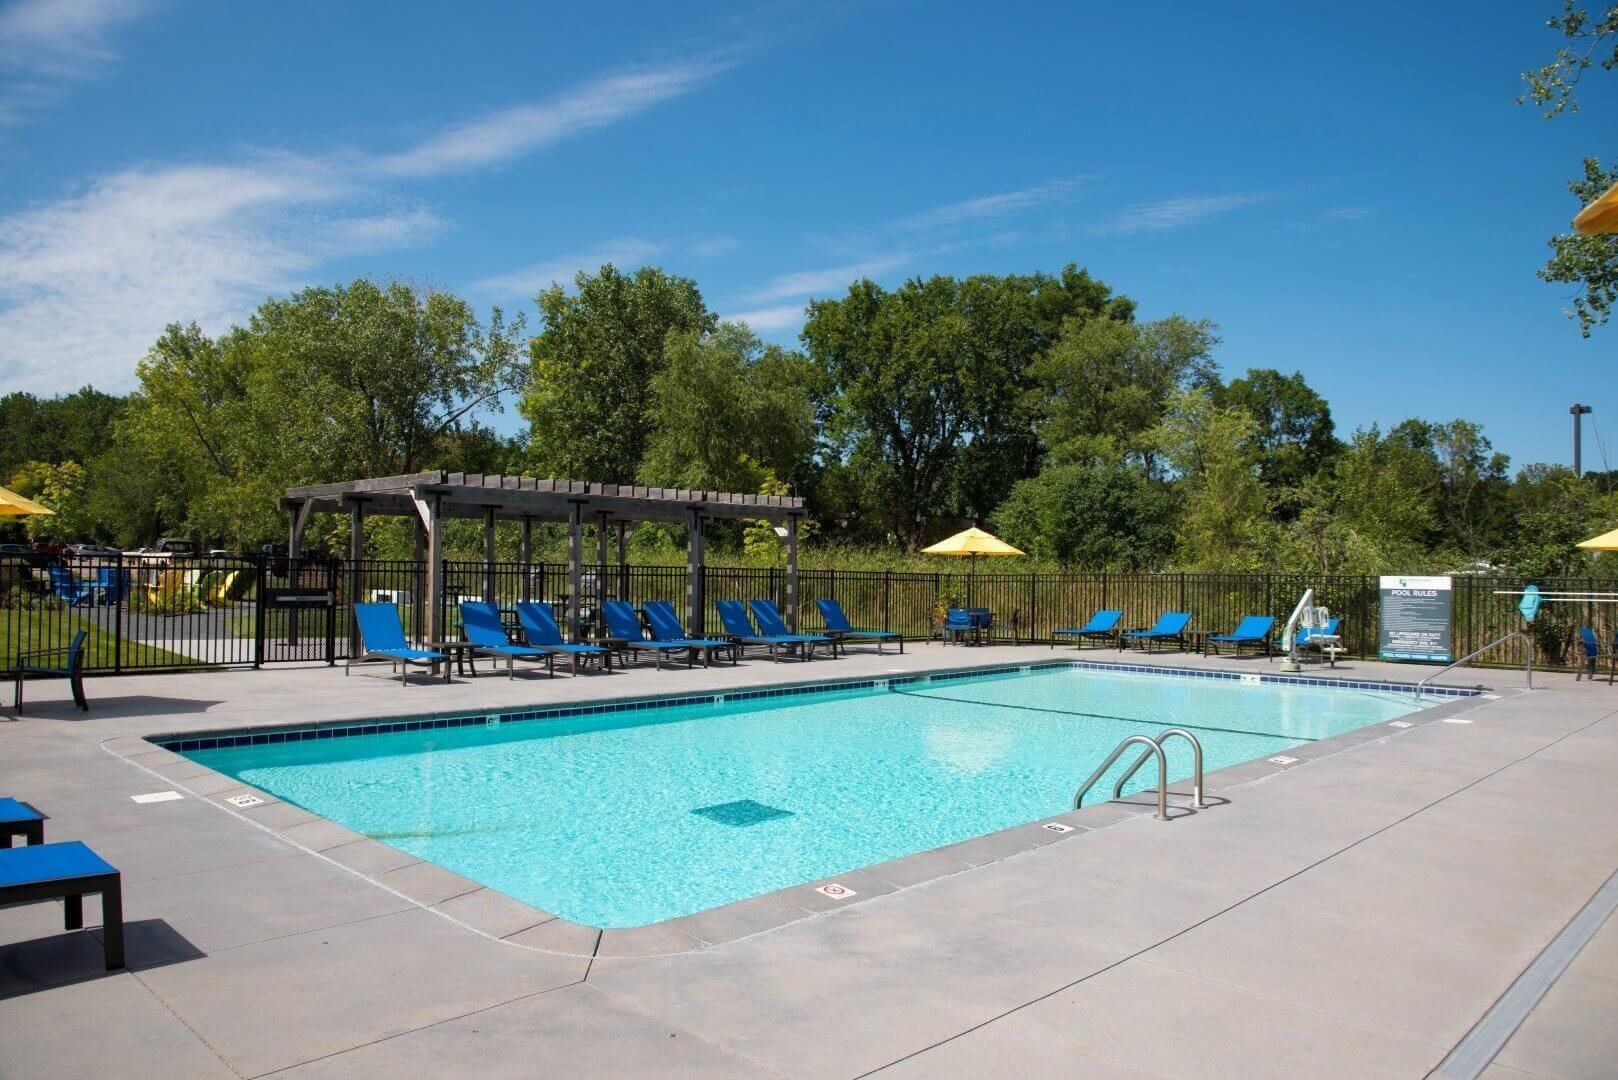 Swimming Pool at Shorview Grand best apartments in Shoreview MN